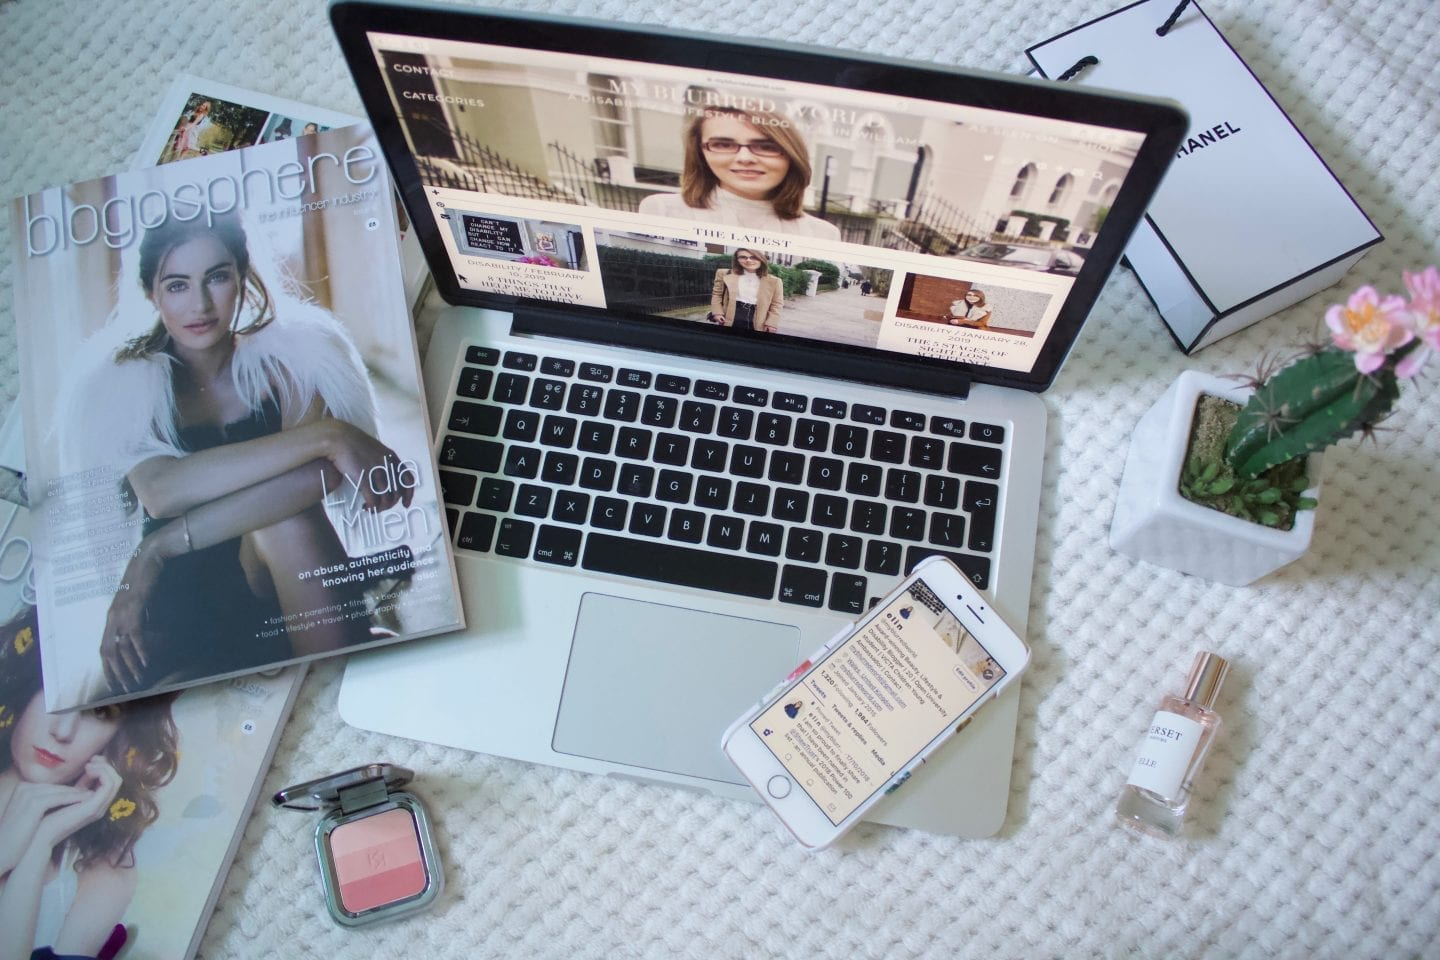 Laptop open on a bed, surrounded by makeup, perfume and magazines. The screen is open on My Blurred World, Elin Williams' lifestyle blog.